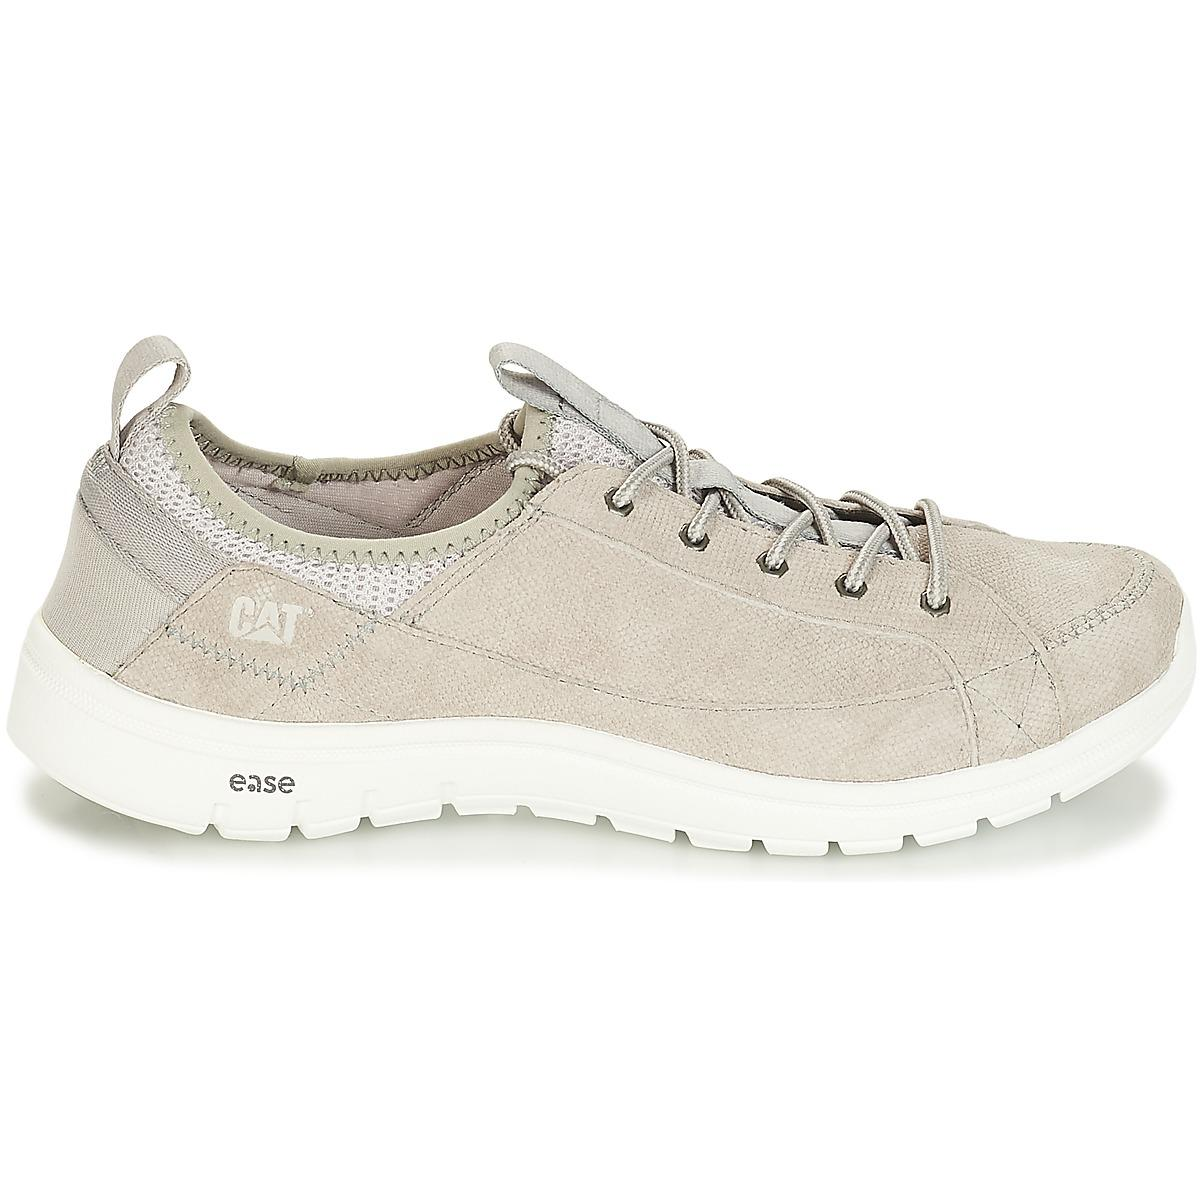 94111b9a304 Caterpillar Swain Shoes (trainers) - Lyst